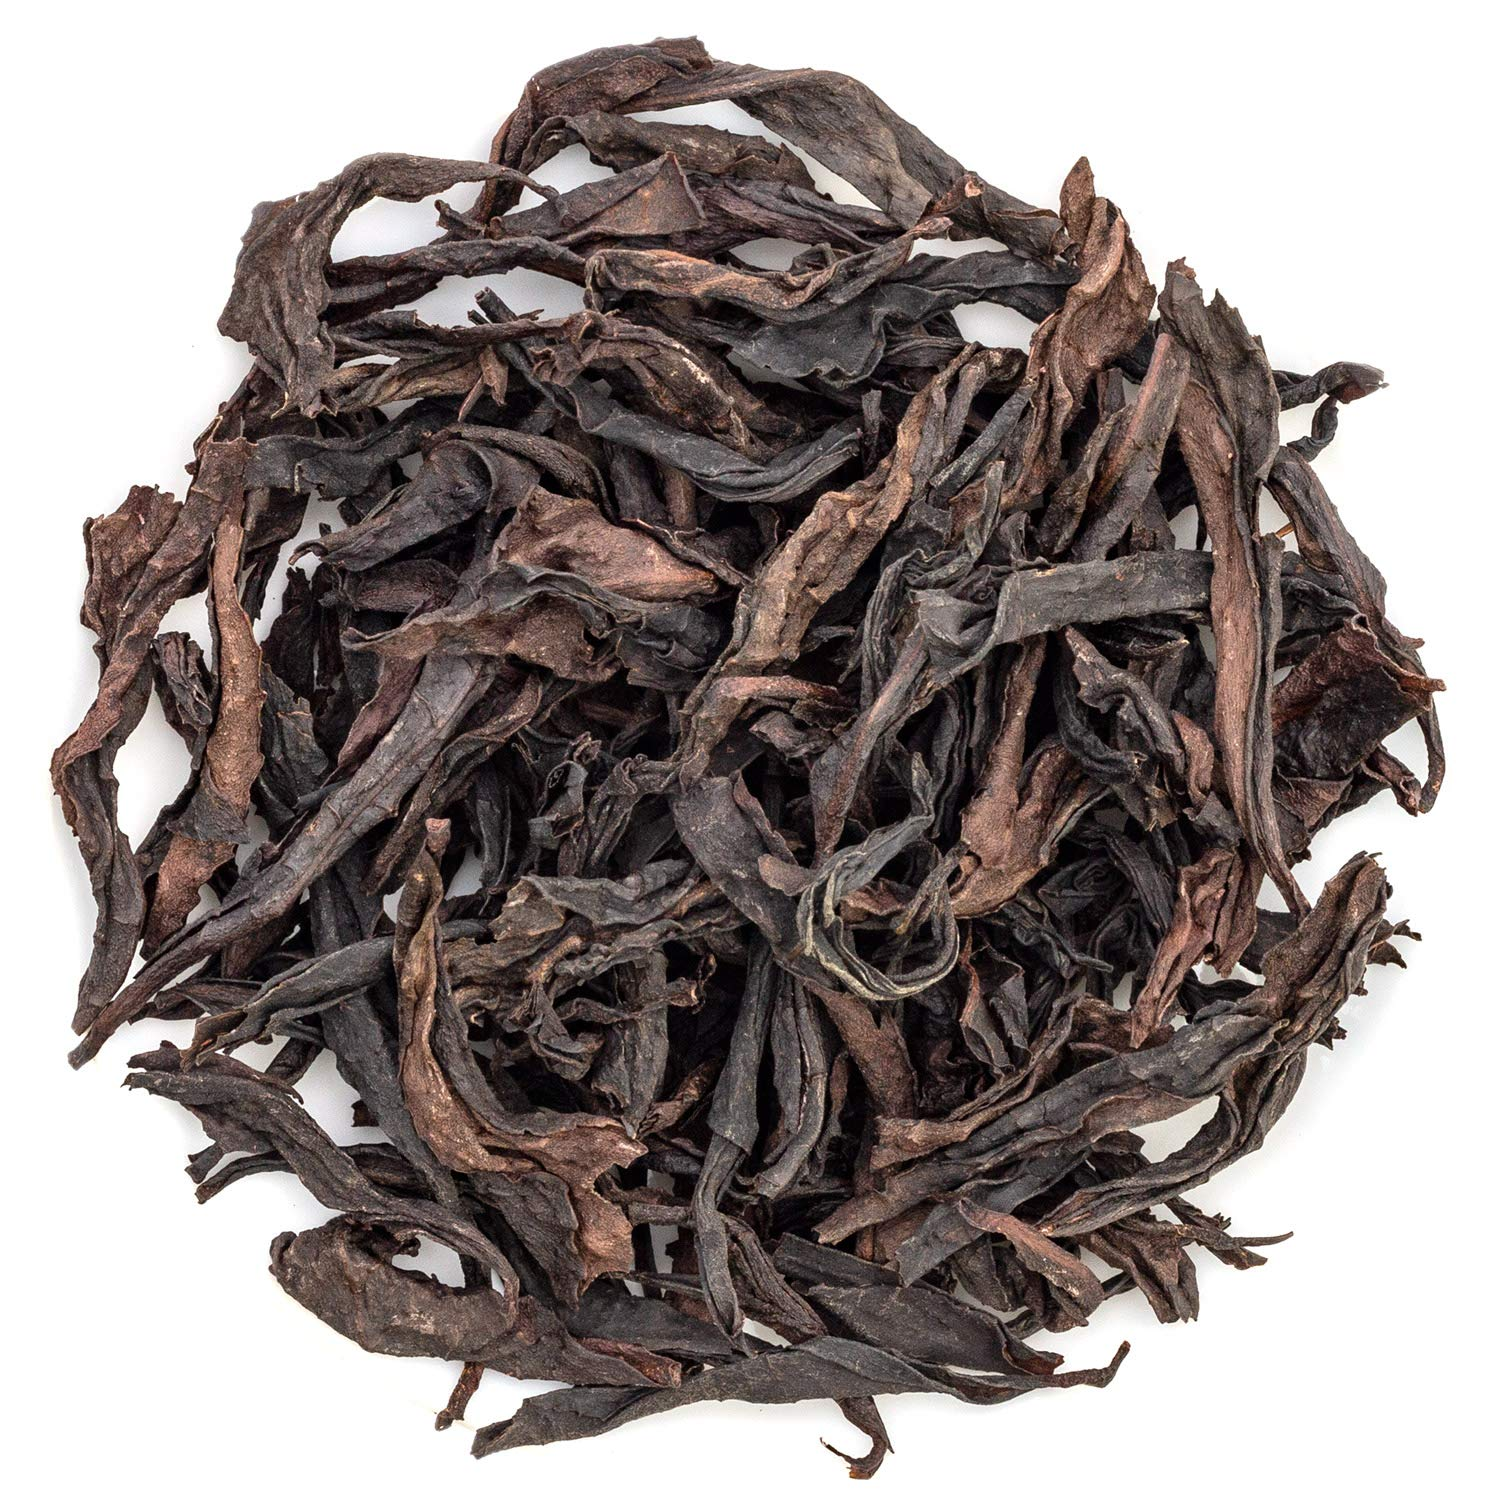 Oriarm 500g / 17.64oz Da Hong Pao Roasted Oolong Tea Loose Leaf - Fujian Wuyi Rock Oolong Tea Dahongpao Big Red Robe - Chinese High Mountain Wulong Tea - Detox Relaxing Naturally Grown by Oriarm